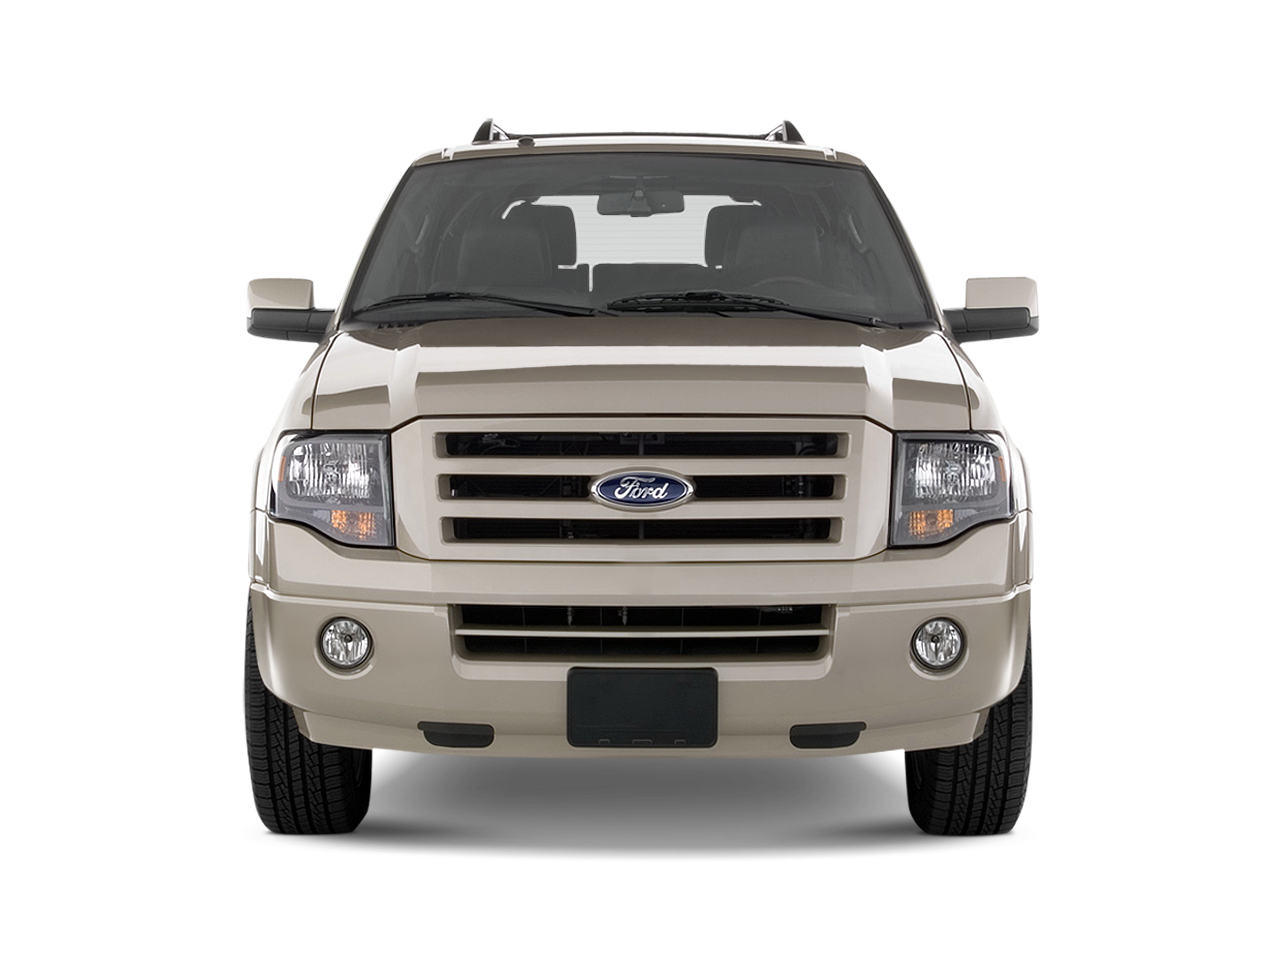 2008 Ford Expedition Funkmaster Flex Edition Latest News HD Wallpapers Download free images and photos [musssic.tk]